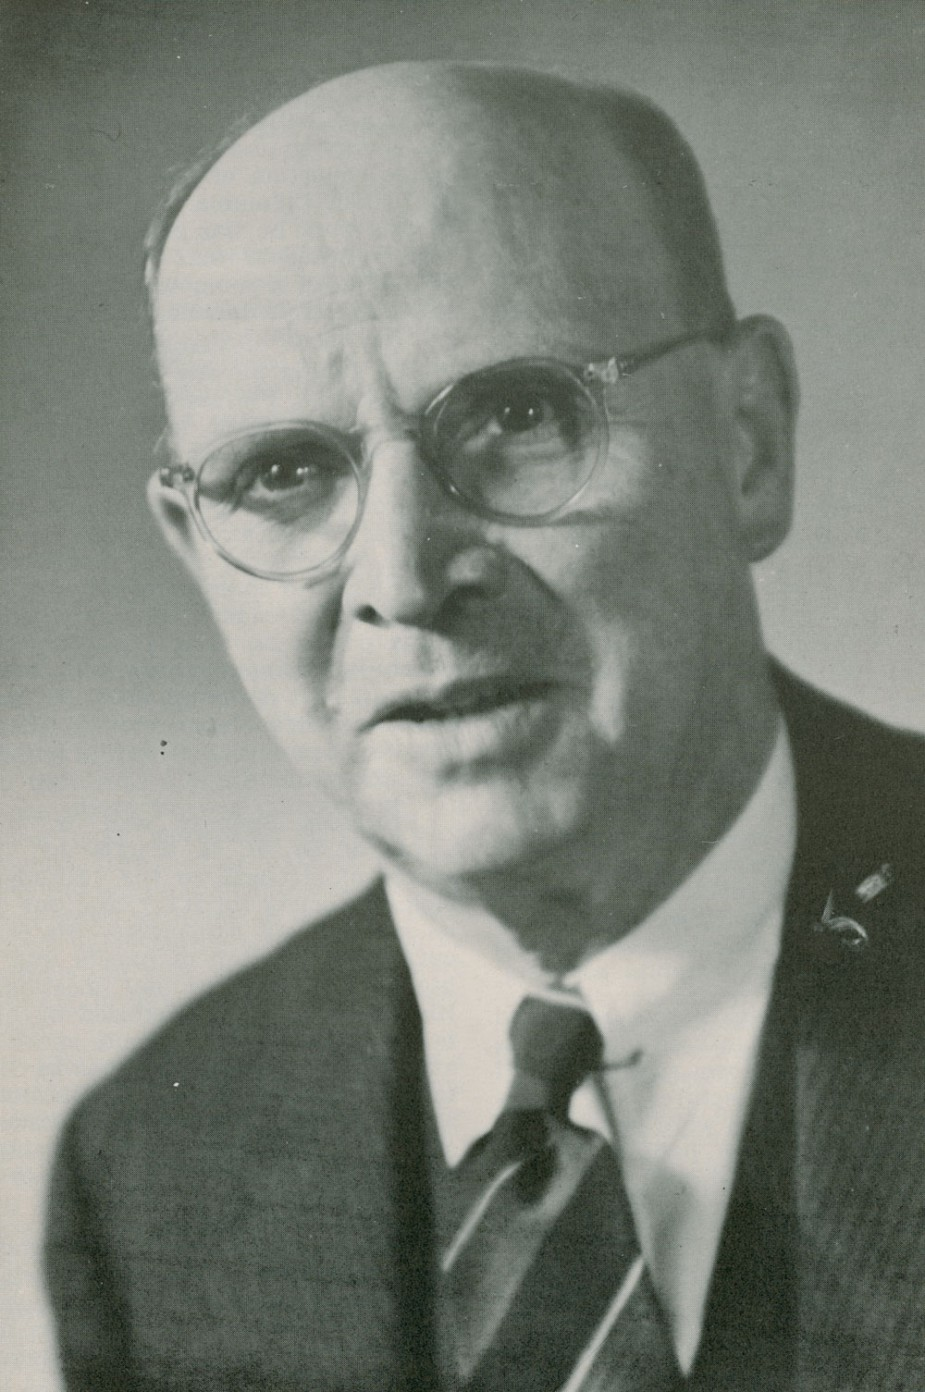 Figure 5.  George Spencer (1888-1966). Professor at the University of BC and founder of the largest BC insect collection there, prolific collector, inspired teacher, and dynamic interpreter of entomology.